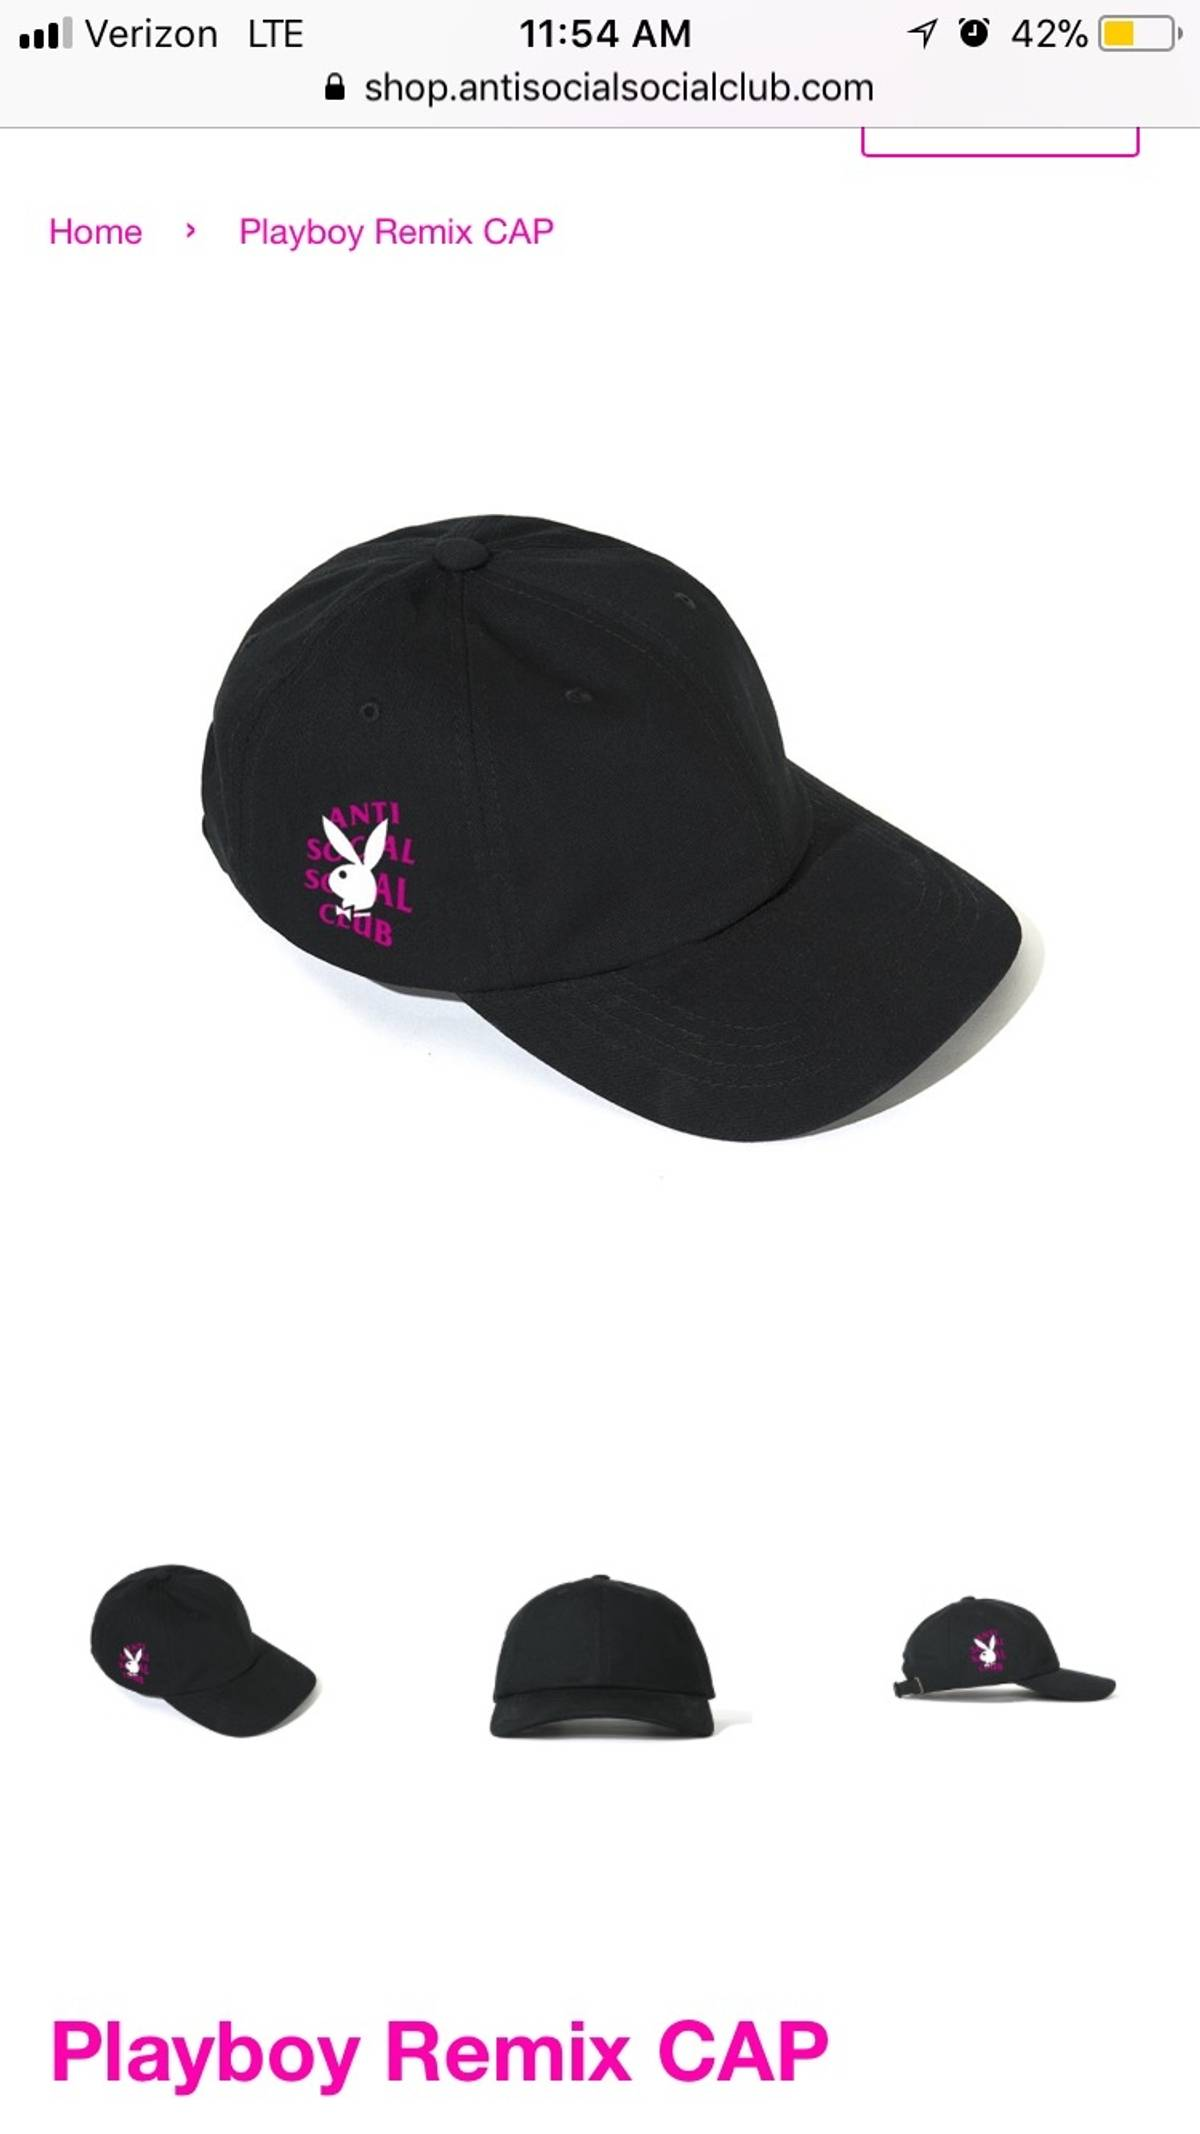 2f87e263aac7c Playboy Anti Social Social Club Playboy Remix Hat